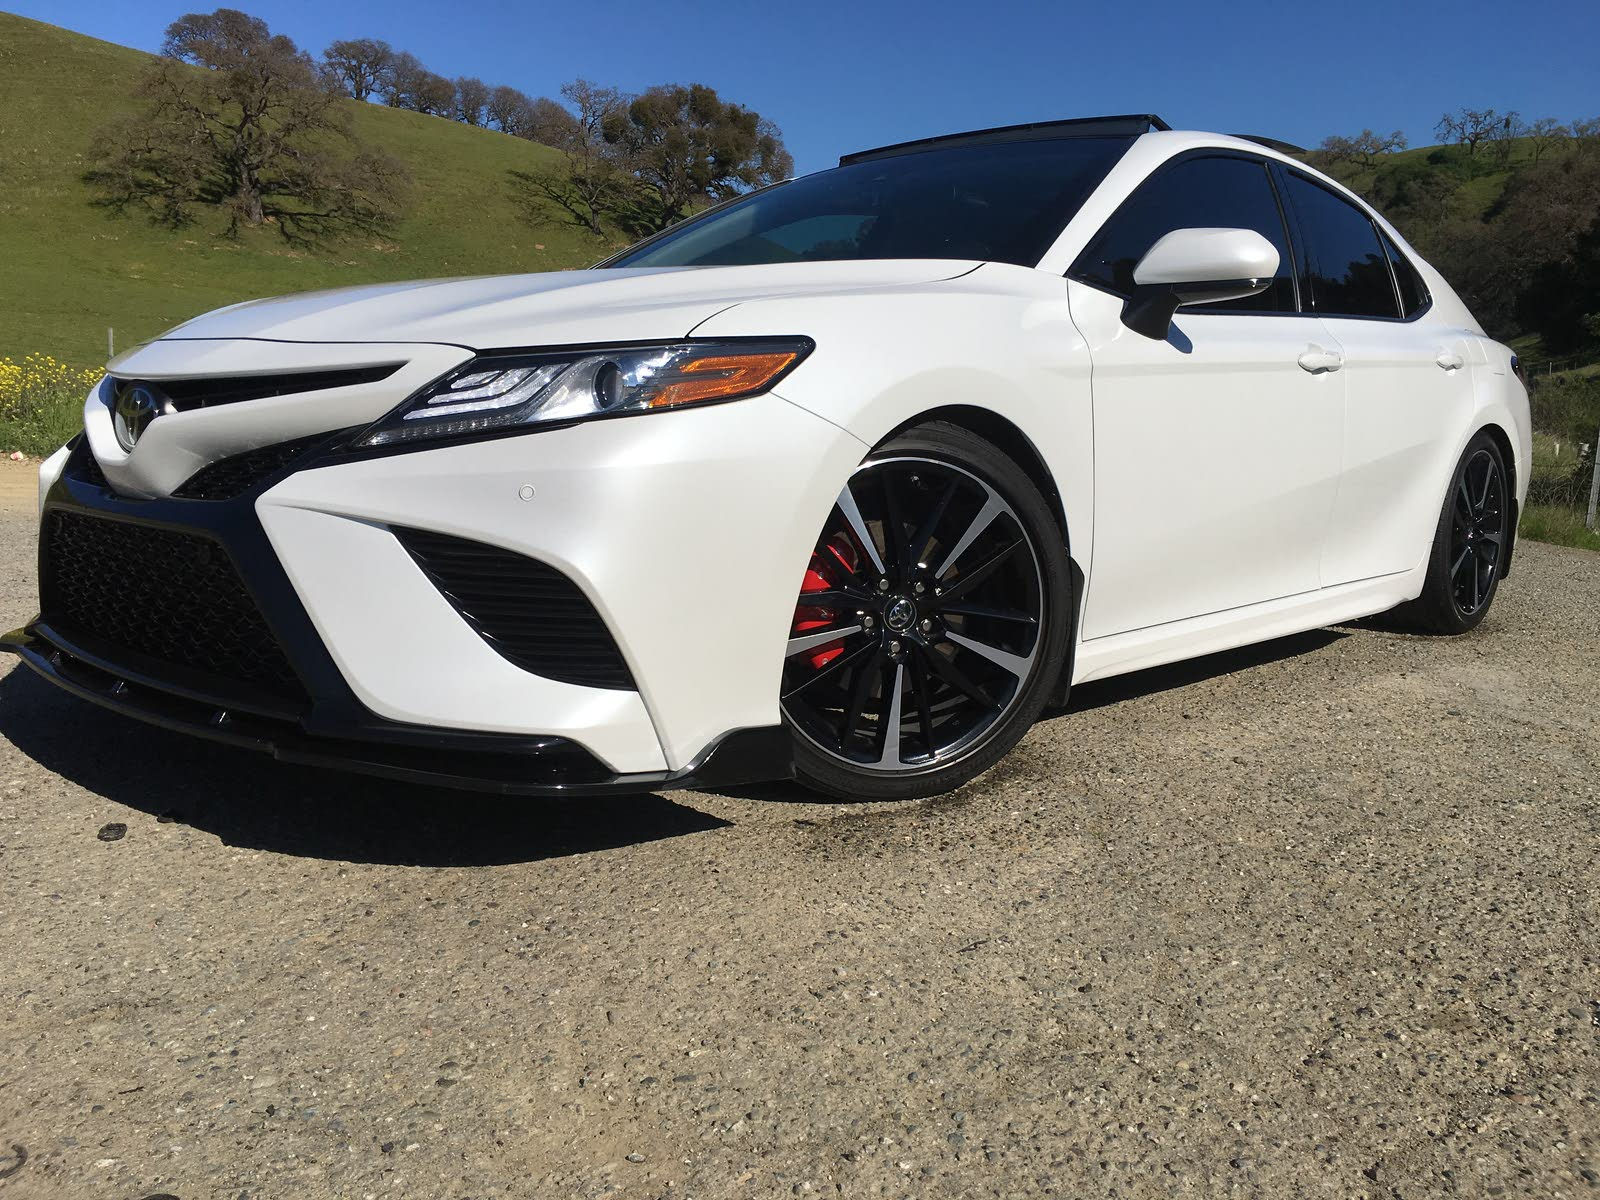 Toyota Camry Questions - TOYOTA Camry 2018 SE acceleration delay